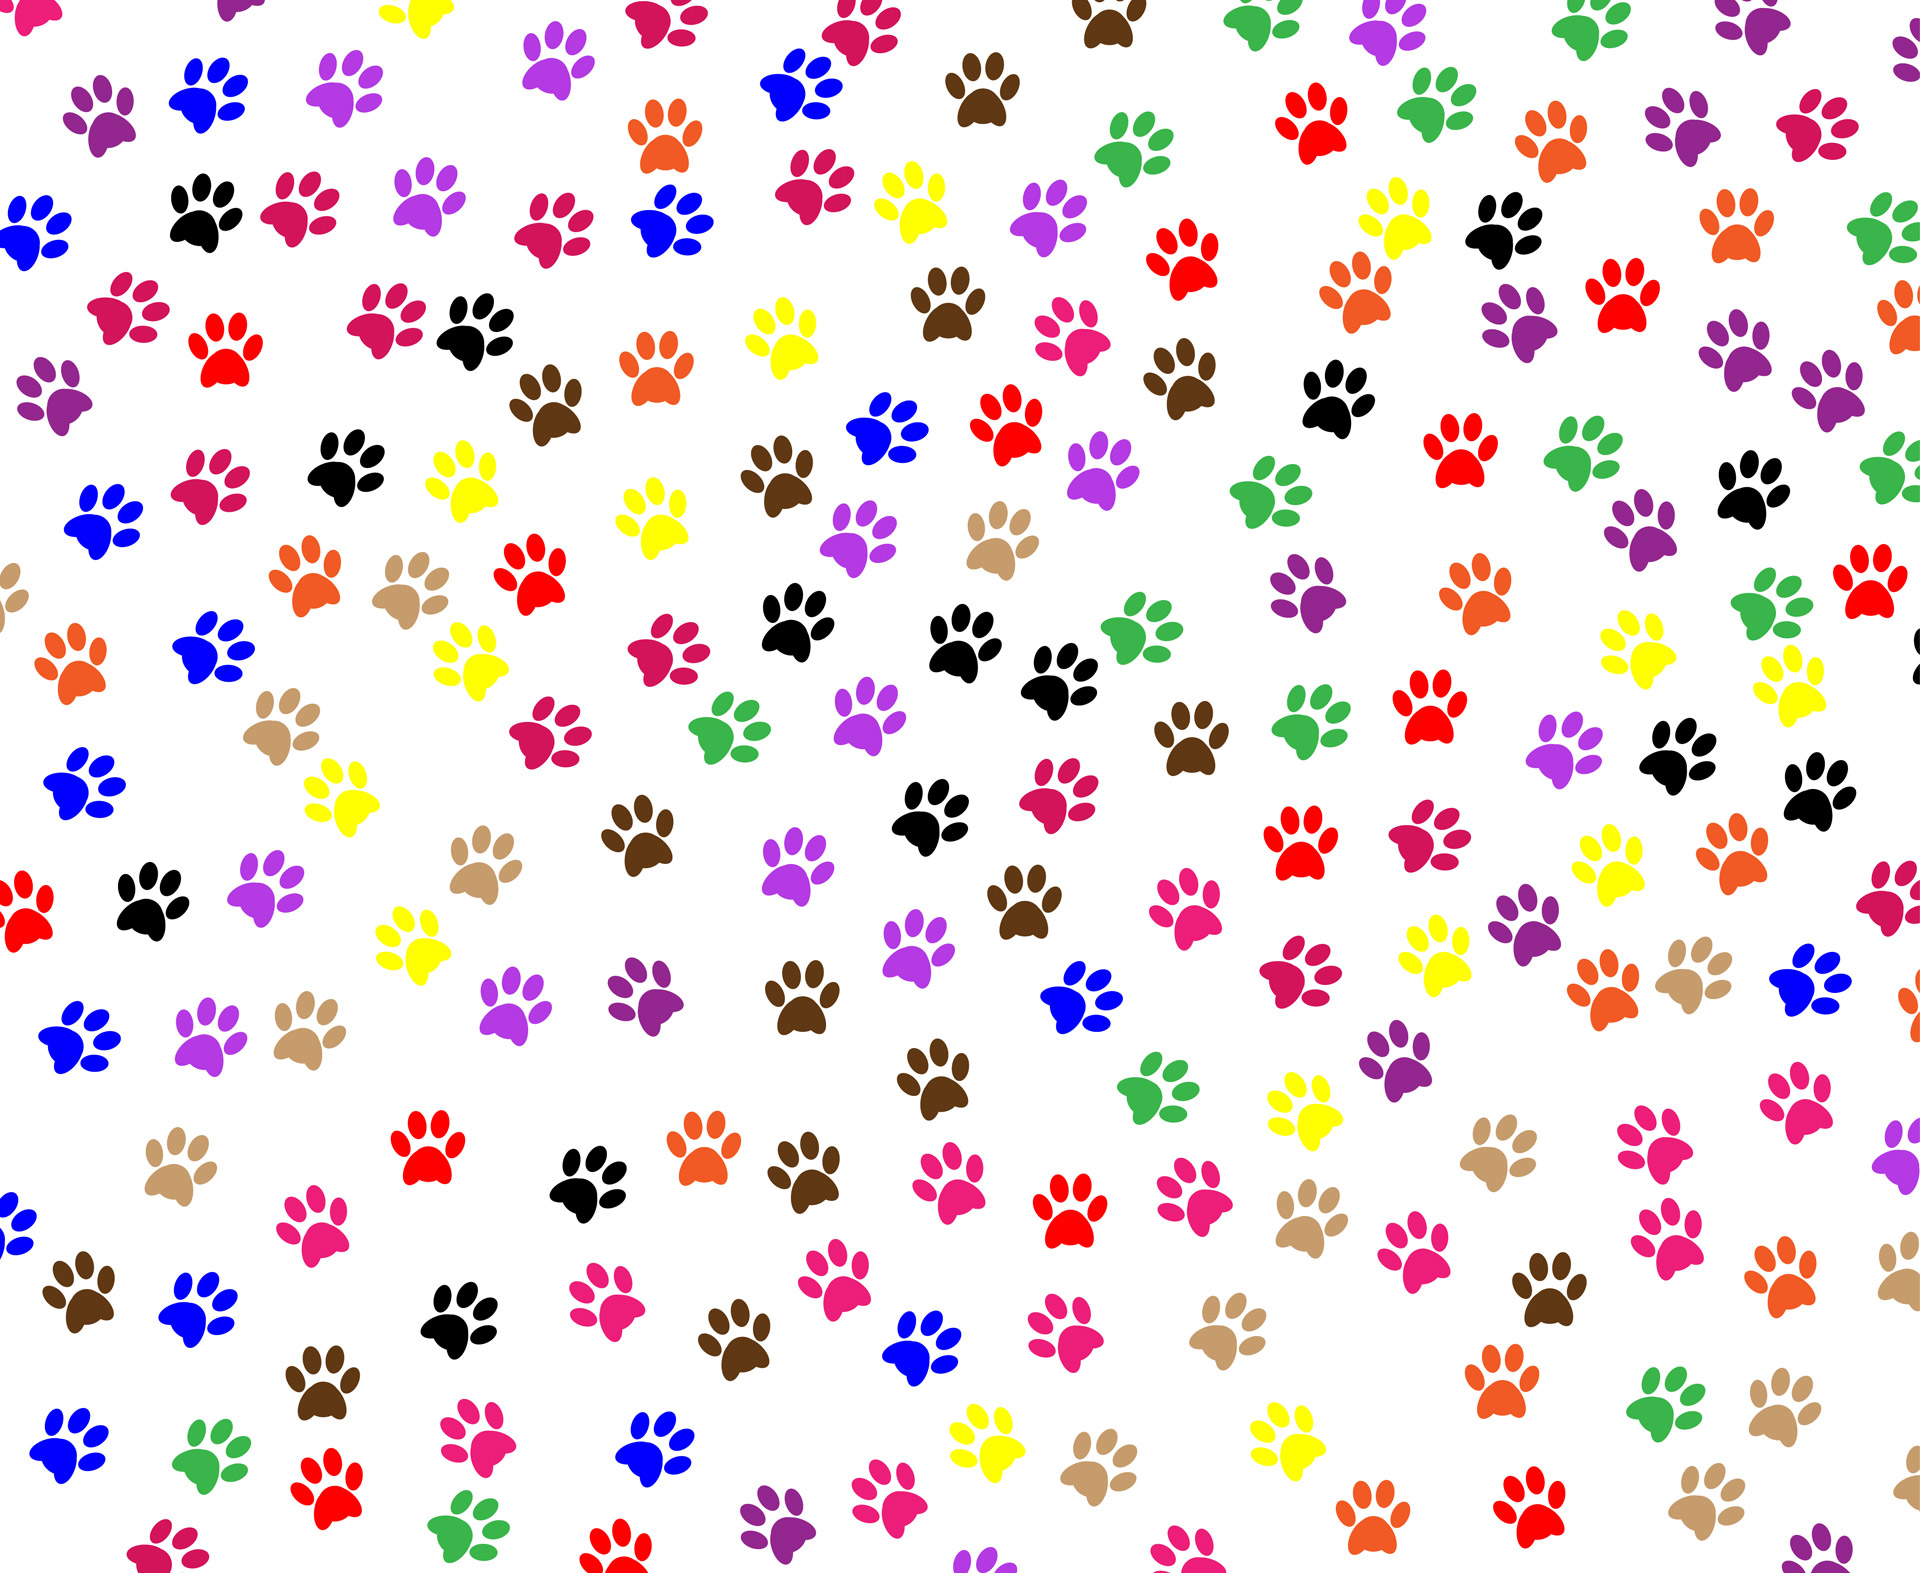 Paw clipart animal backgrounds Paw Wallpapers HD 4k Best